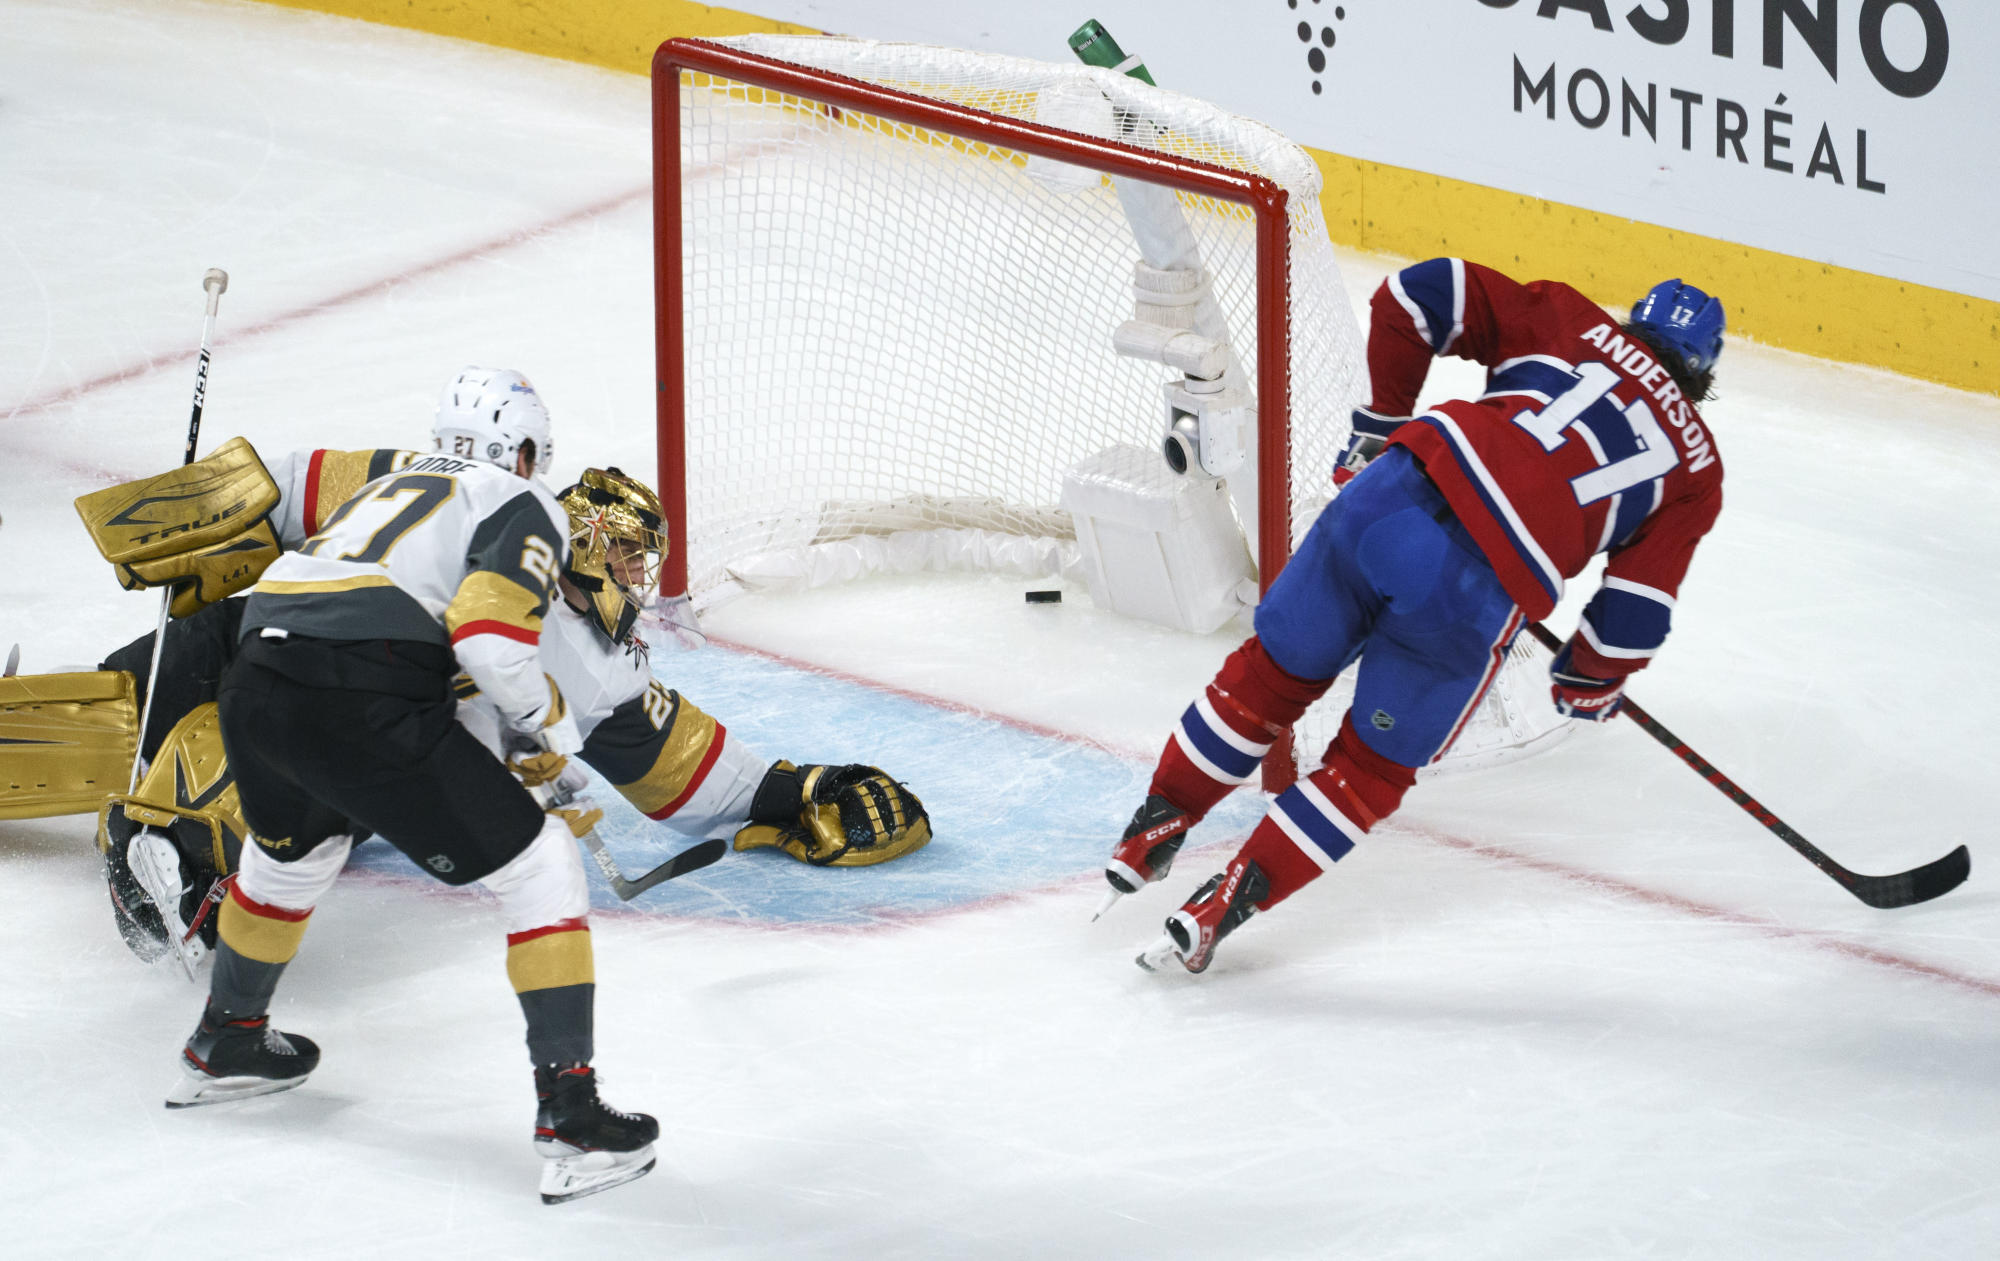 Canadiens beat Golden Knights 3-2 in OT to take 2-1 lead